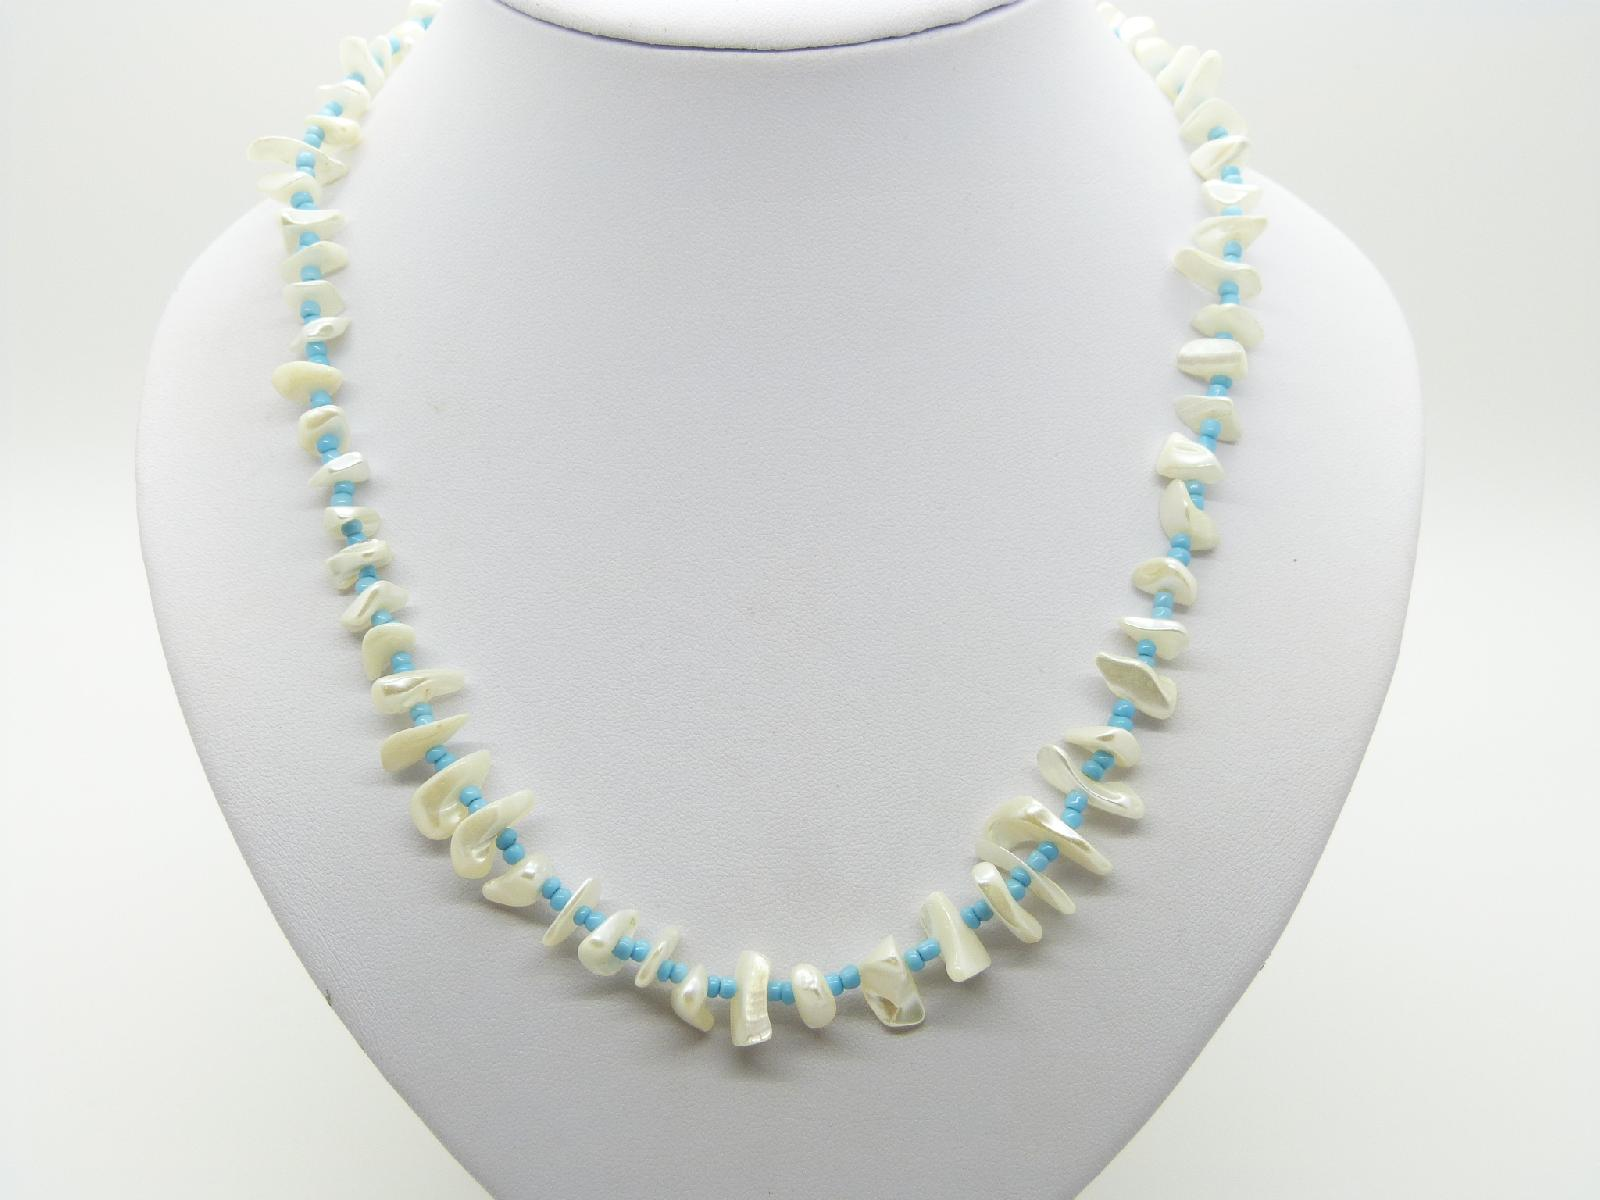 £13.00 - Vintage 30s Mother of Pearl Bead and Turquoise Glass Bead Necklace and Earrings 53cms